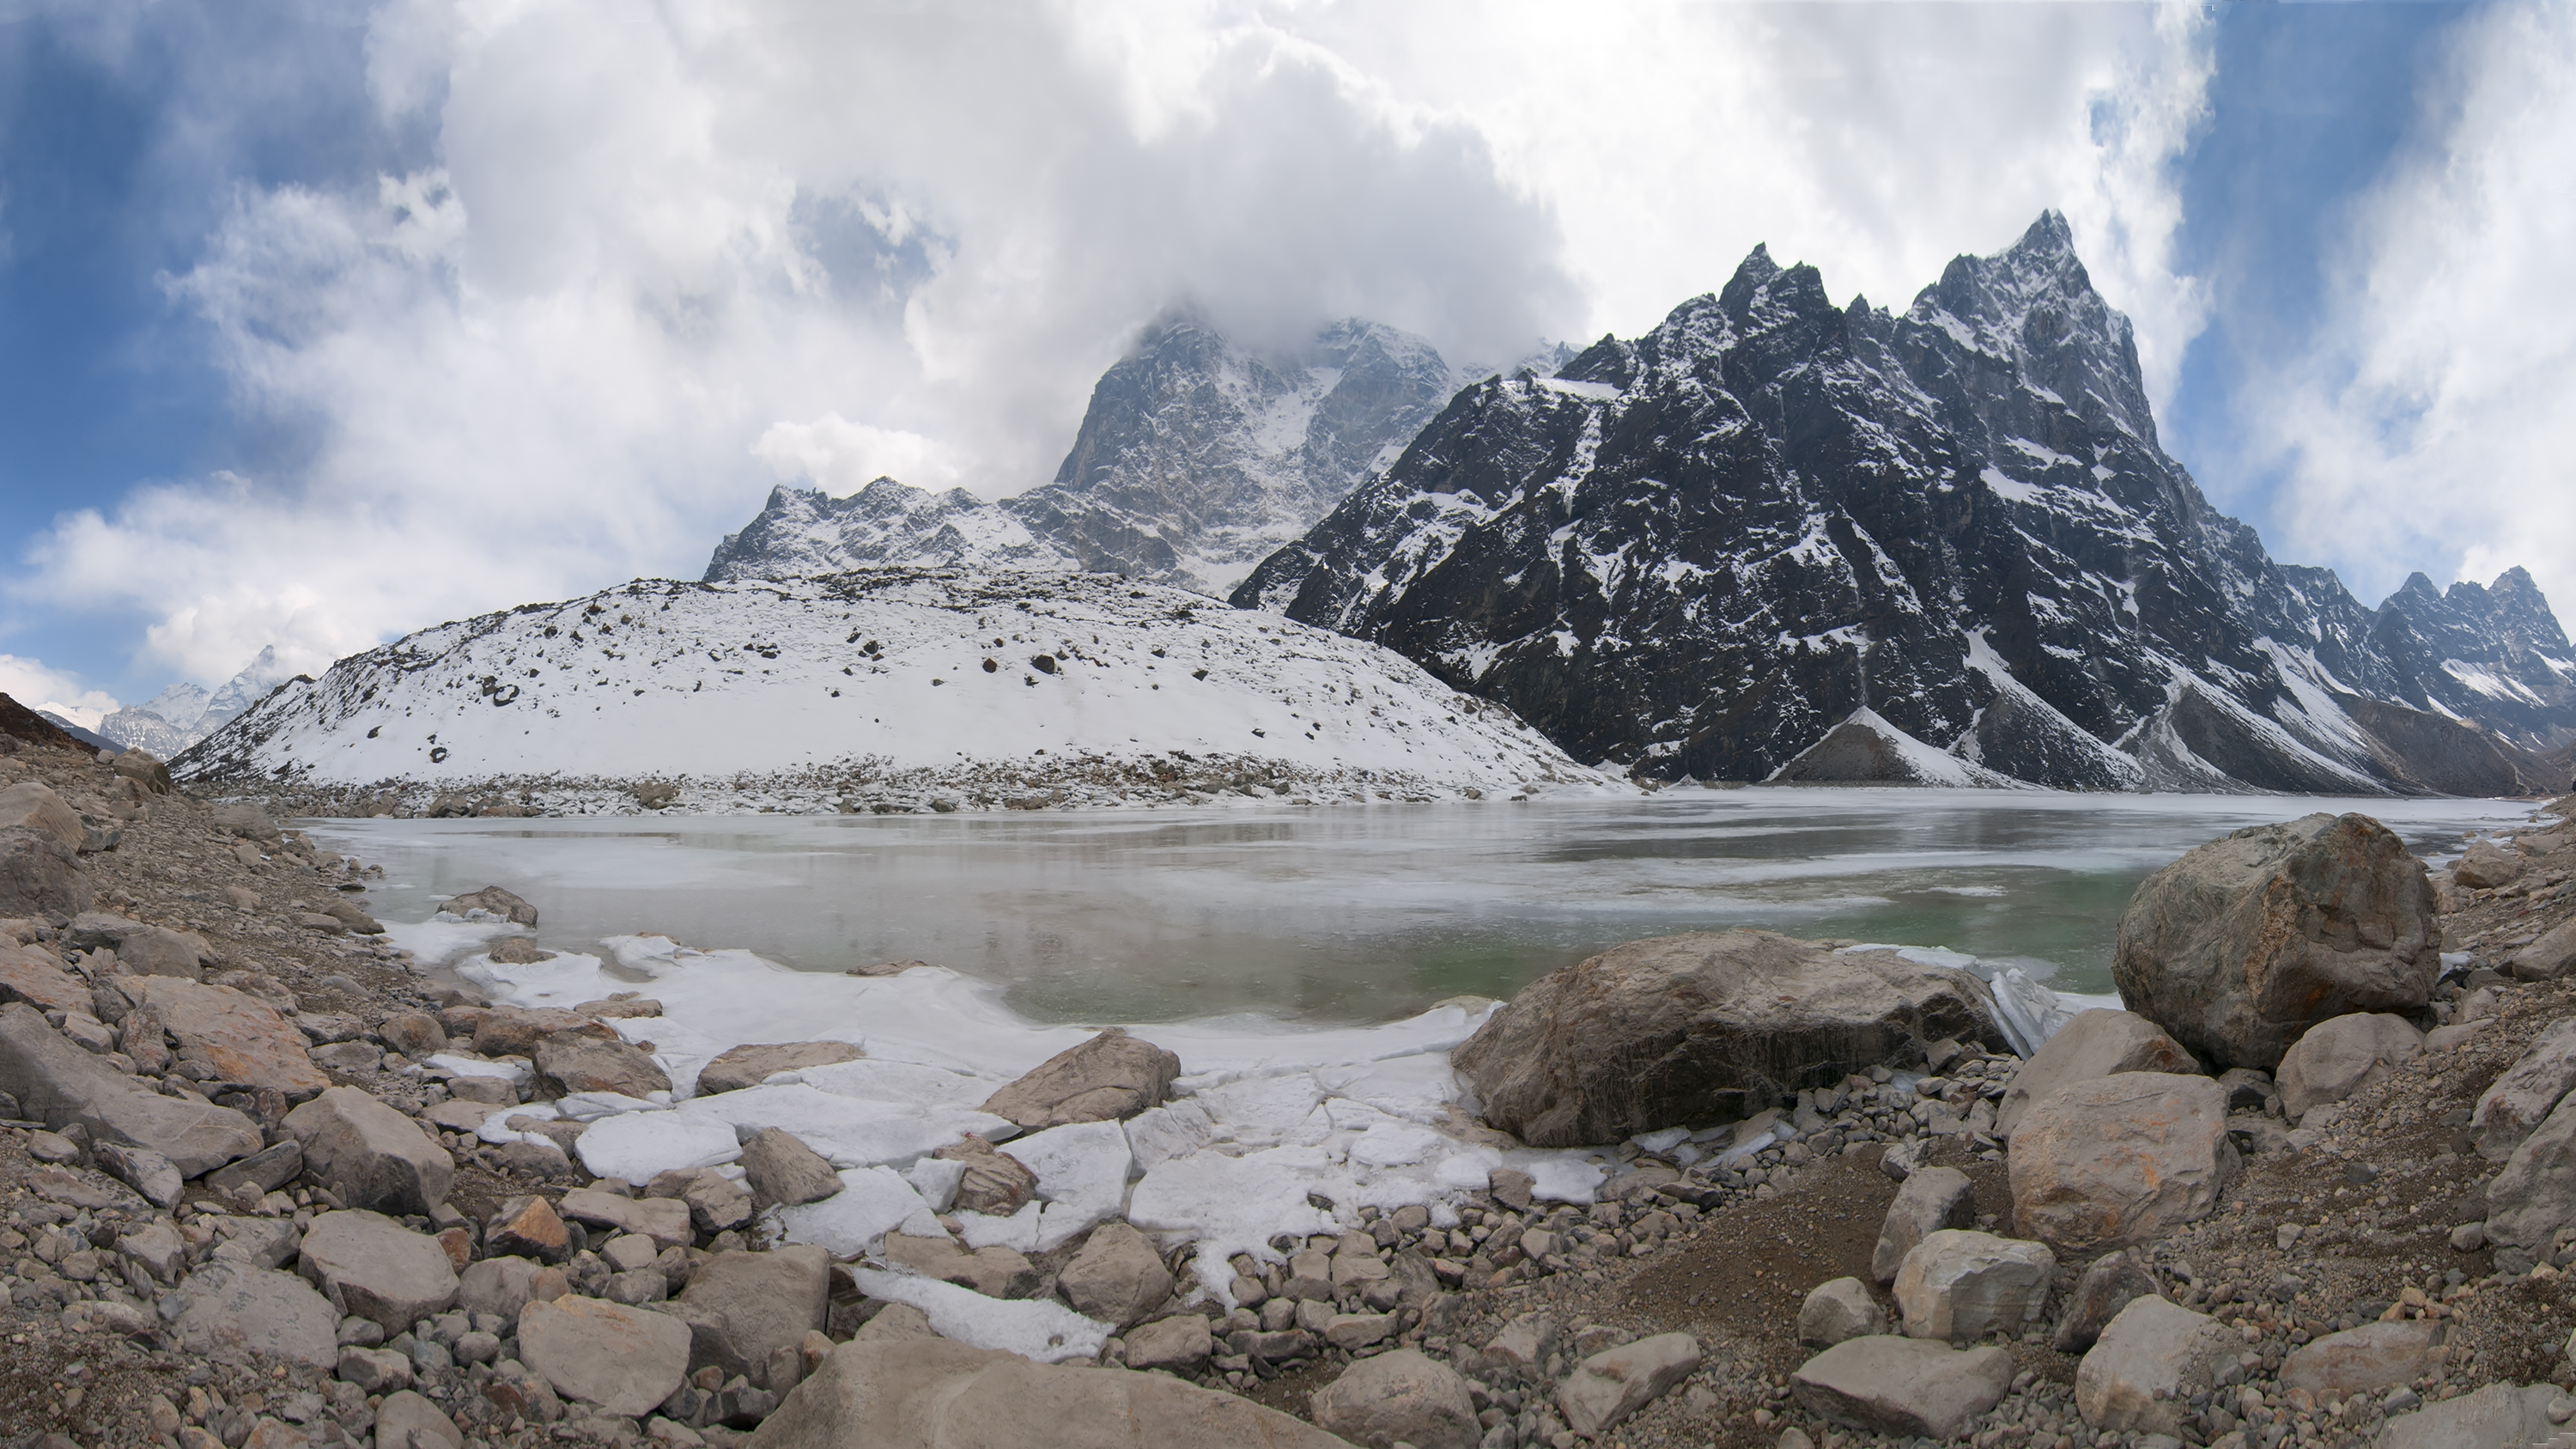 Impact of Climate Change on Glacier Lakes